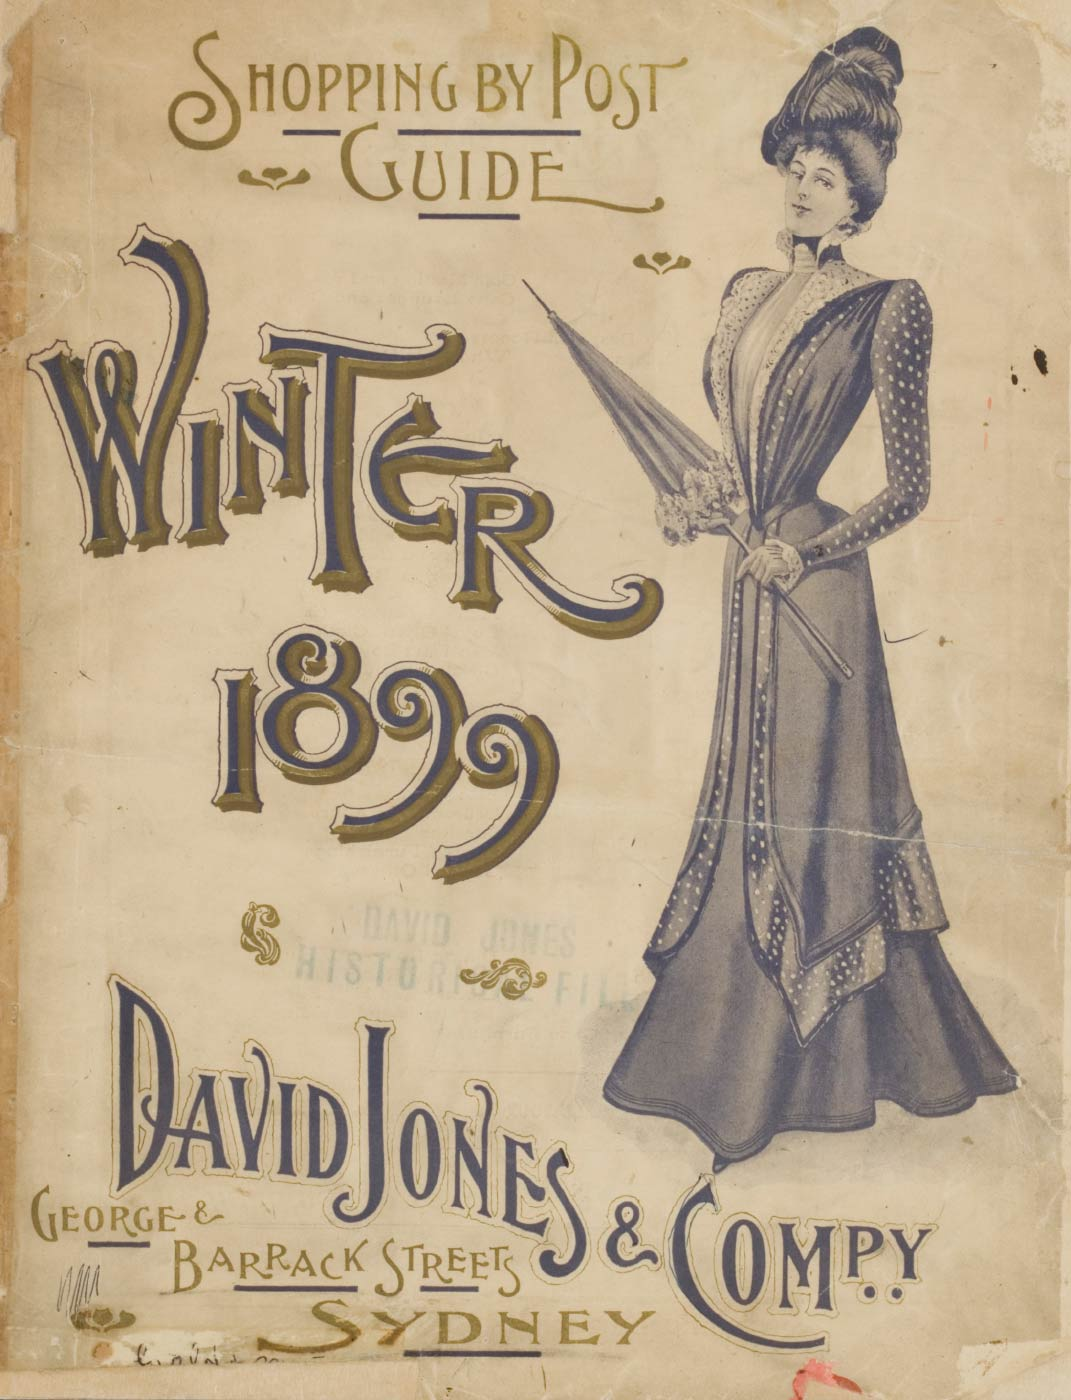 Cover of 'Shopping by Post Guide, Winter 1899', David Jones & Compy. David Jones' archive collection. - click to view larger image